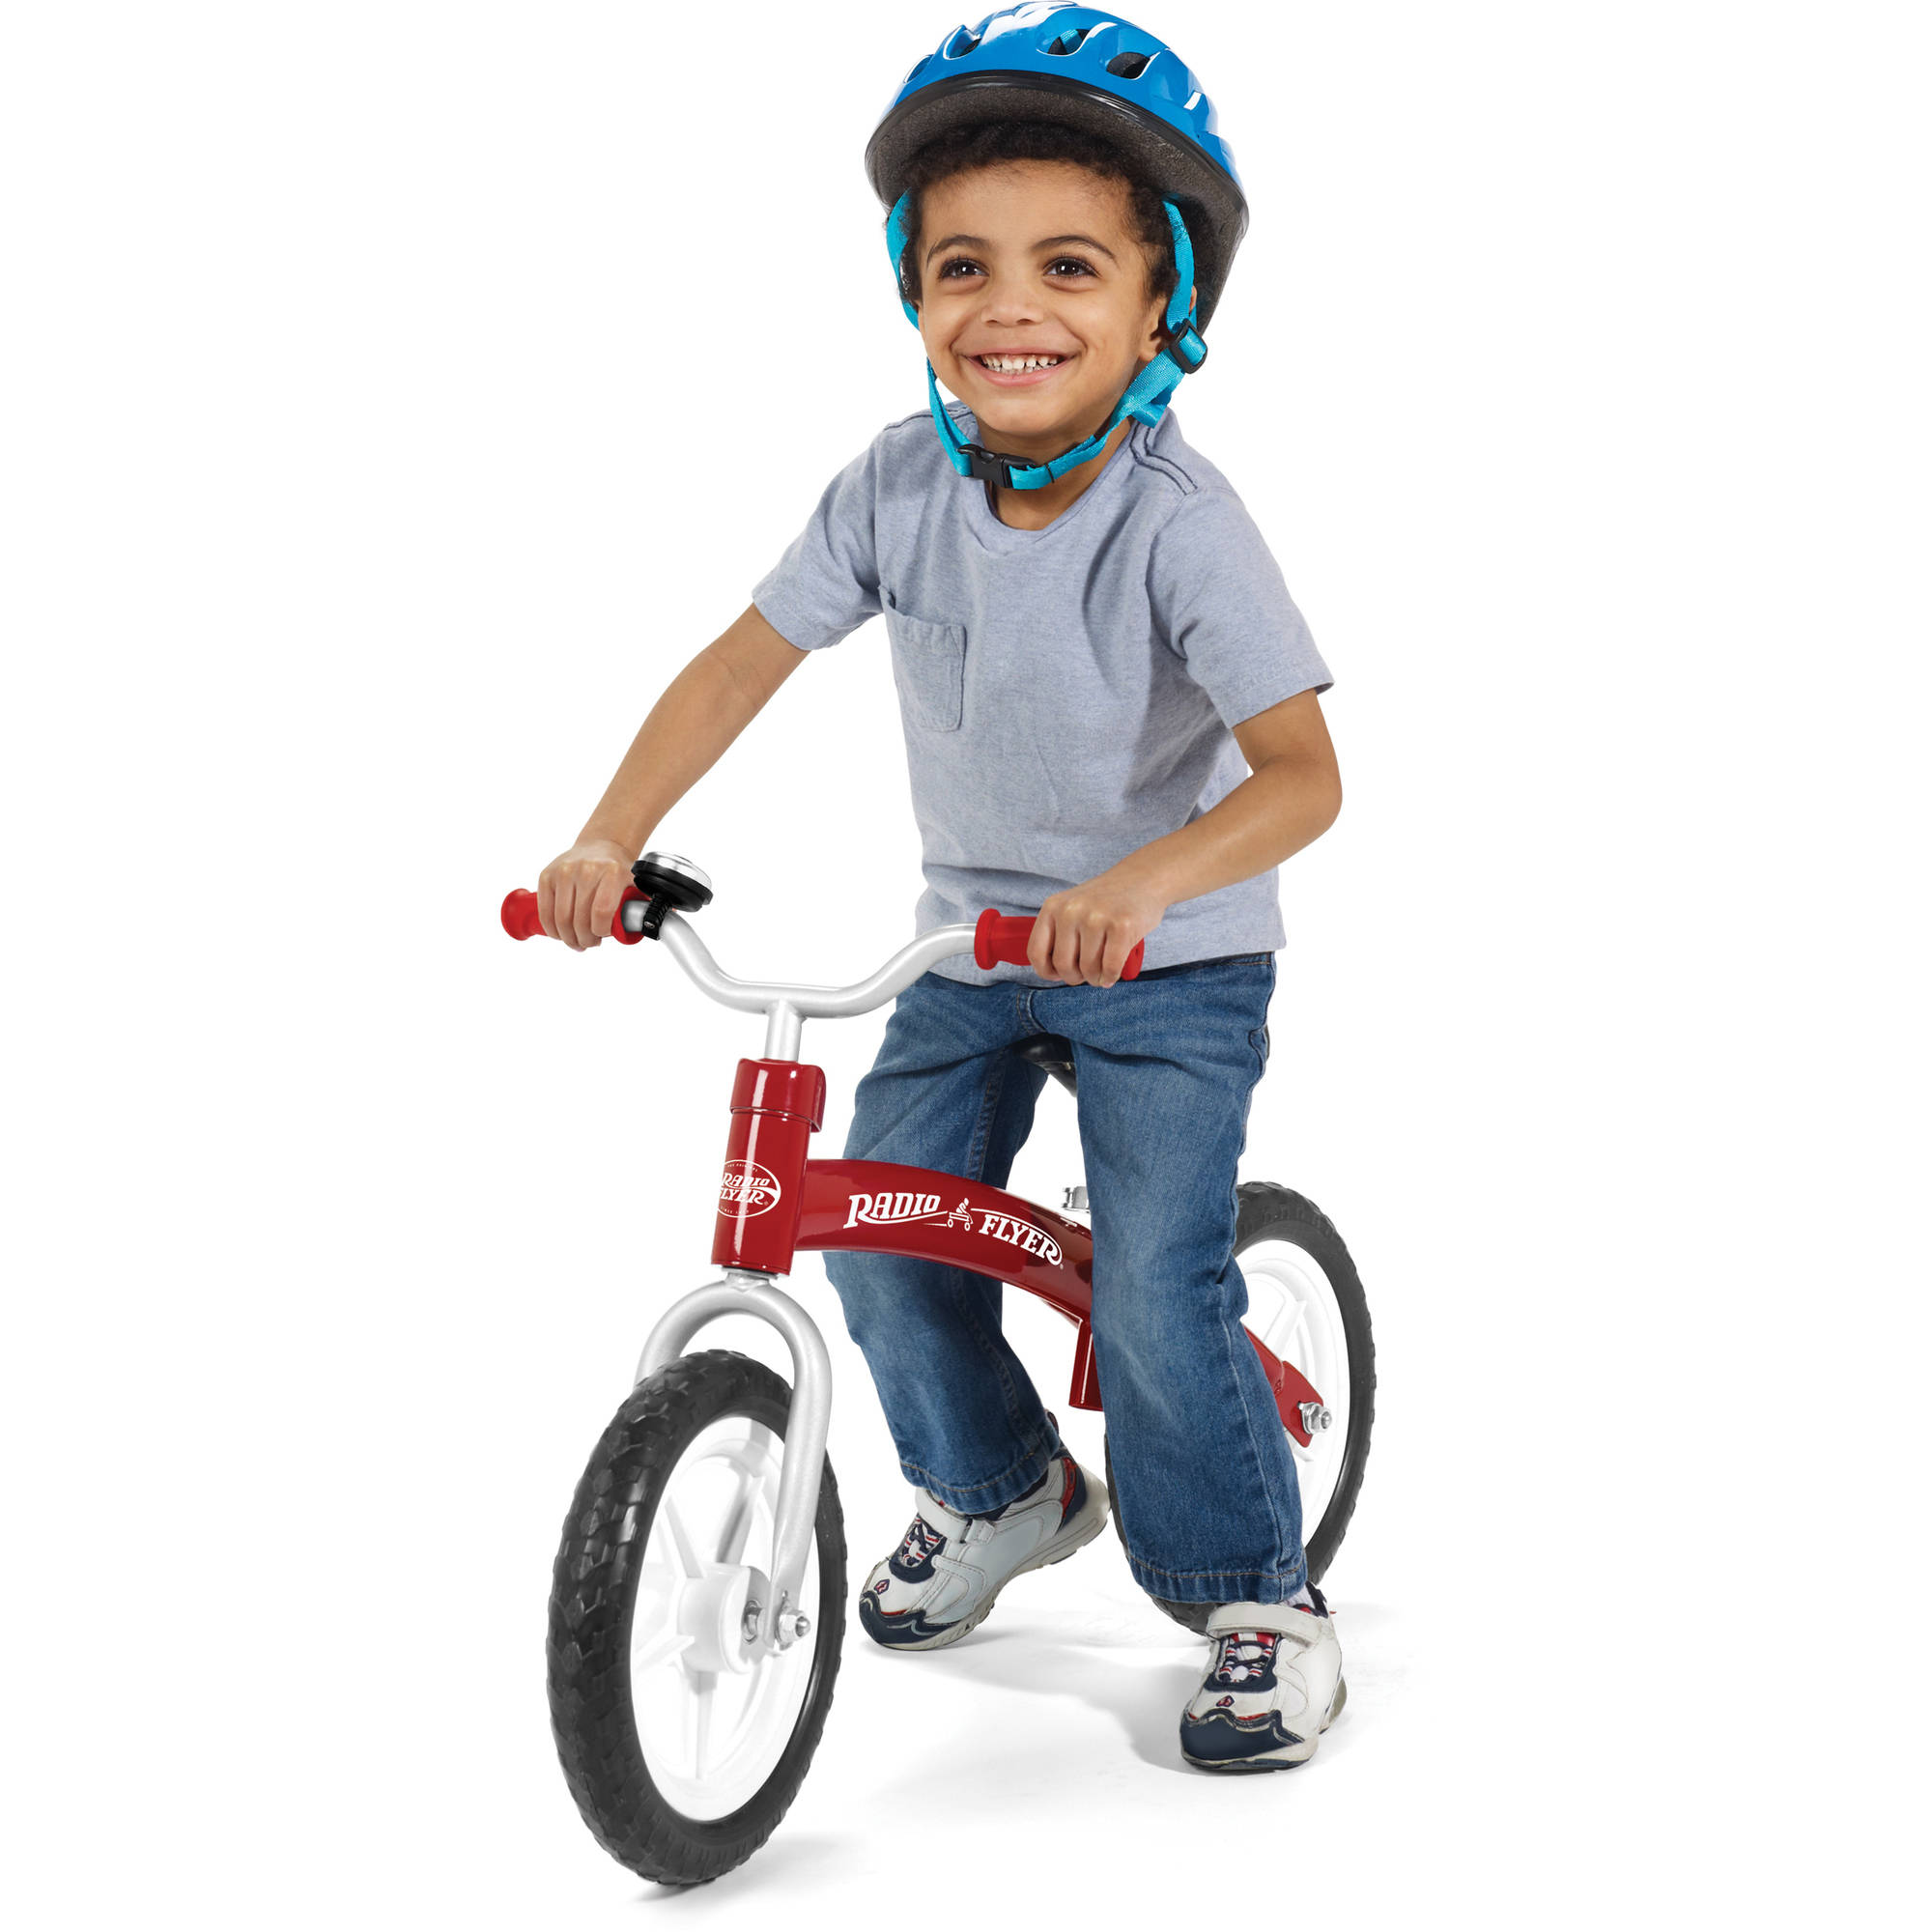 Radio Flyer Glide & Go Balance Bike, Red